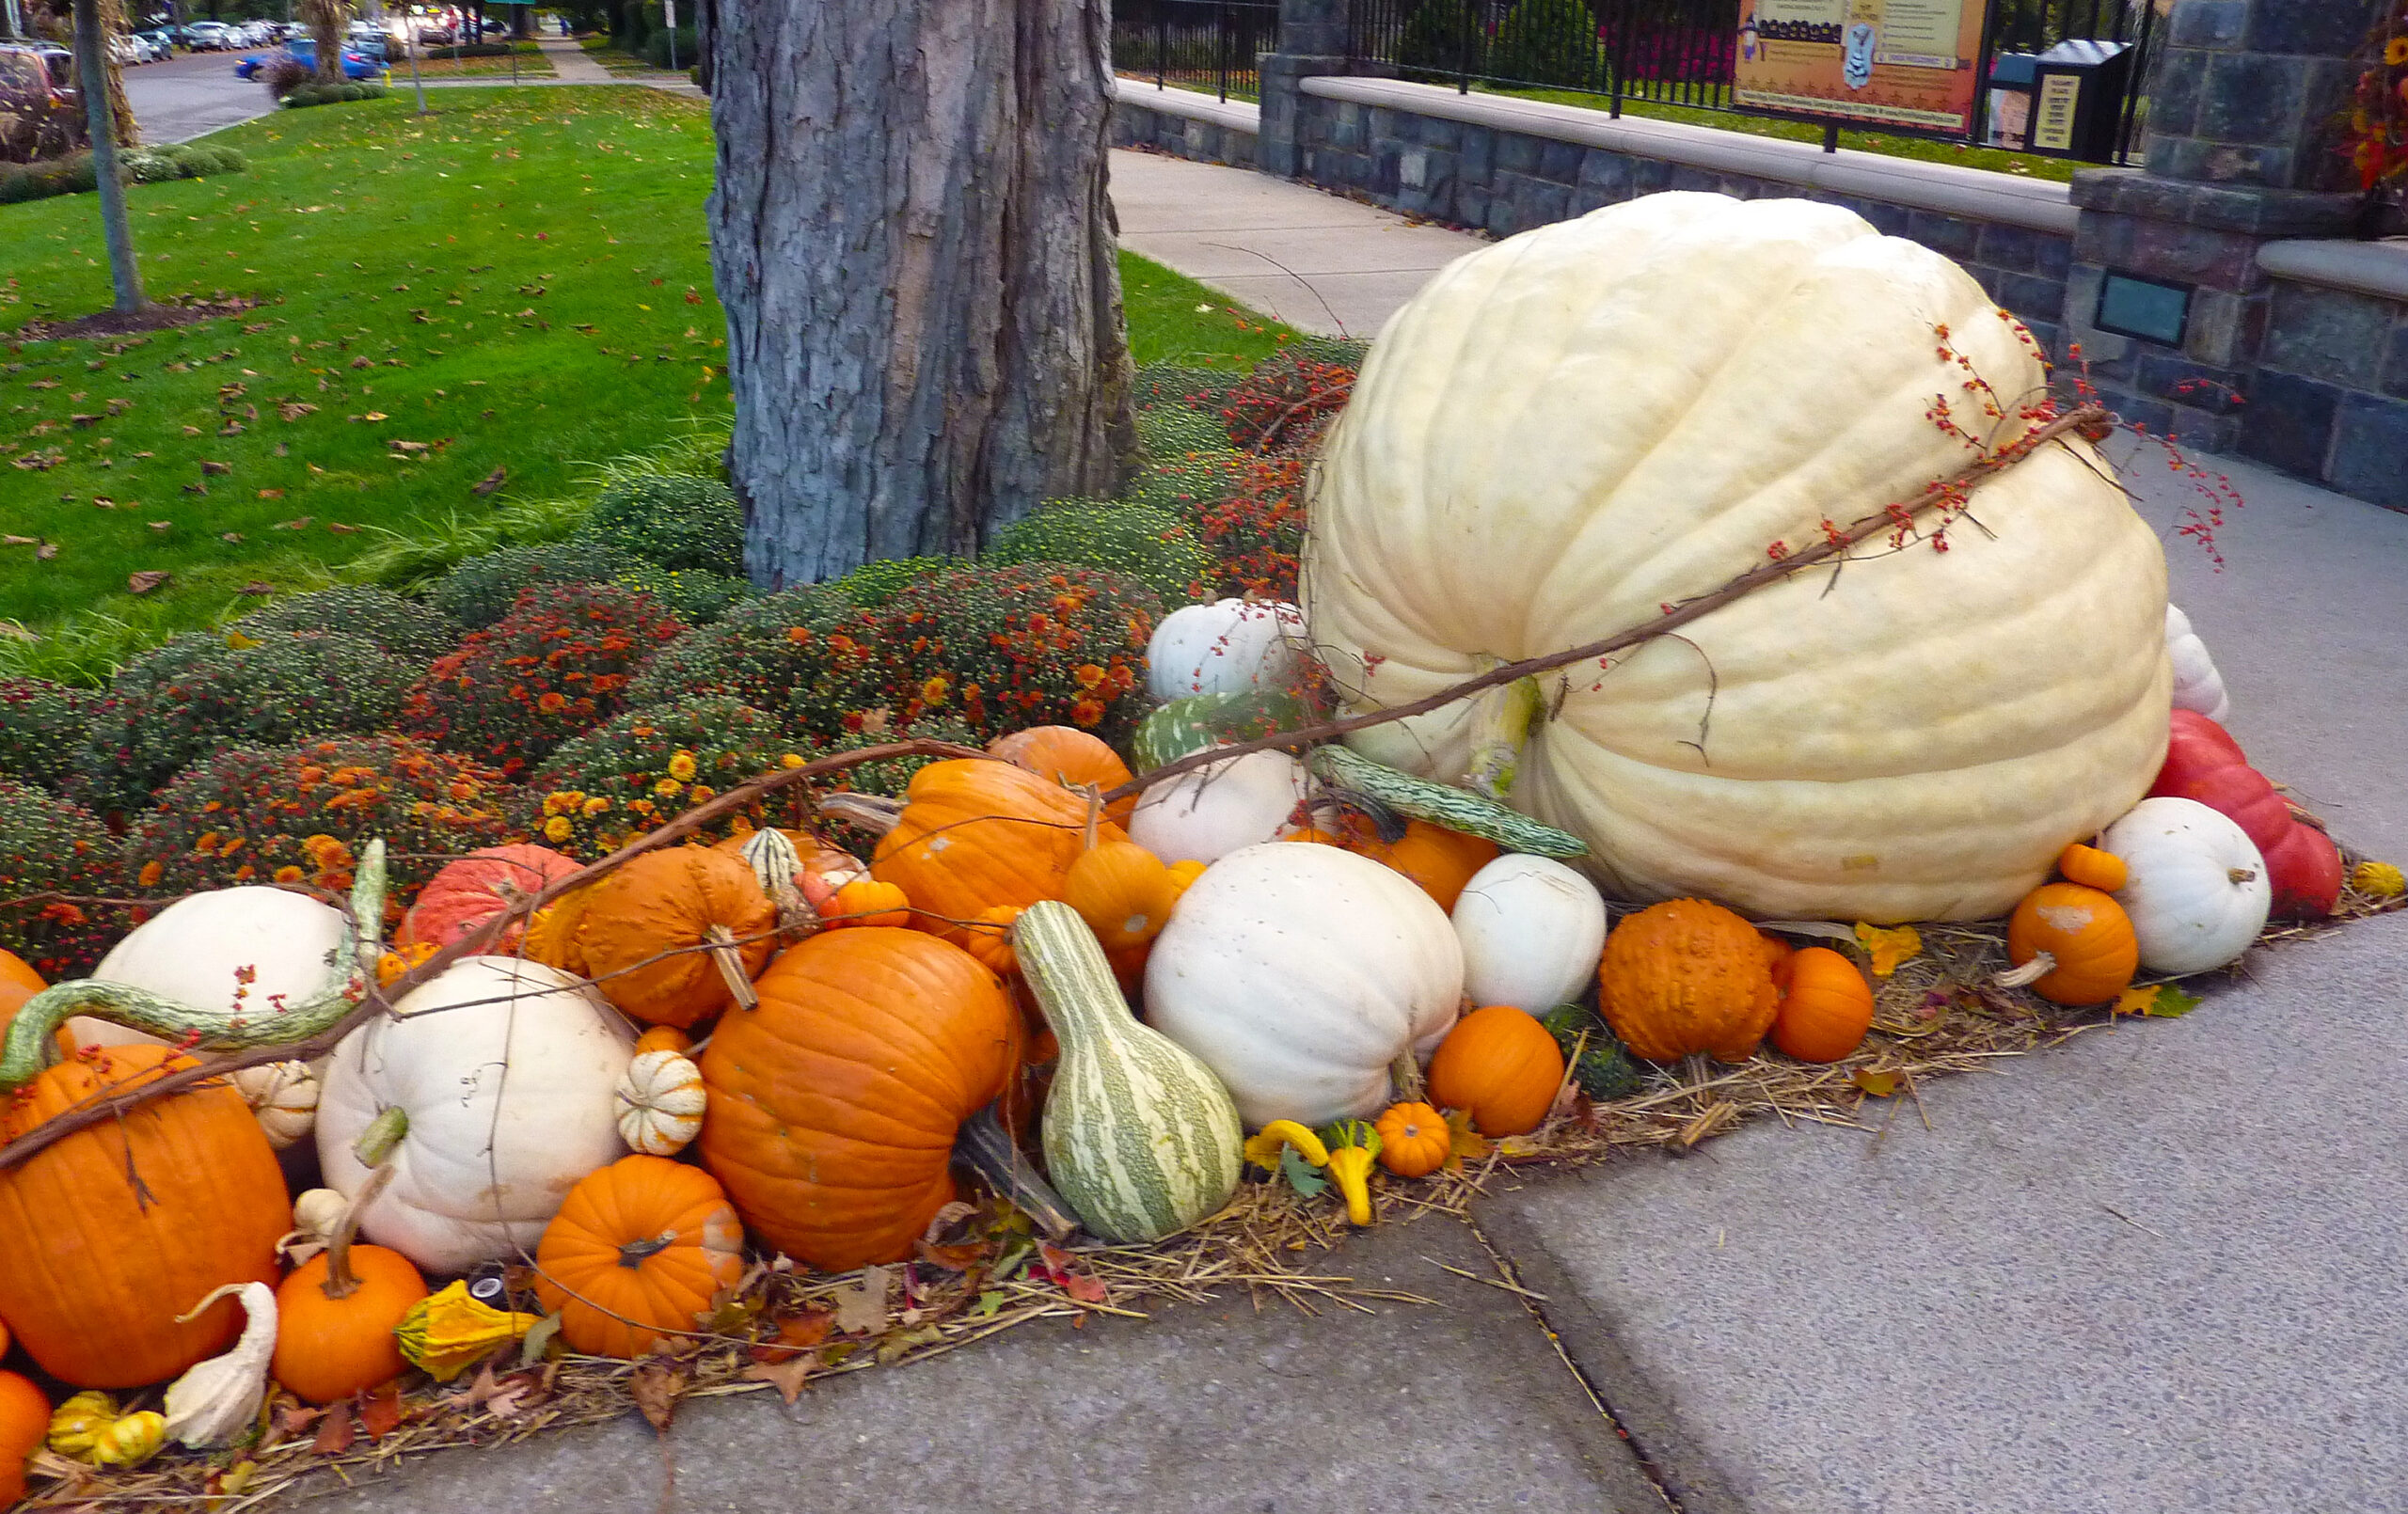 Protect your pumpkins from squirrels